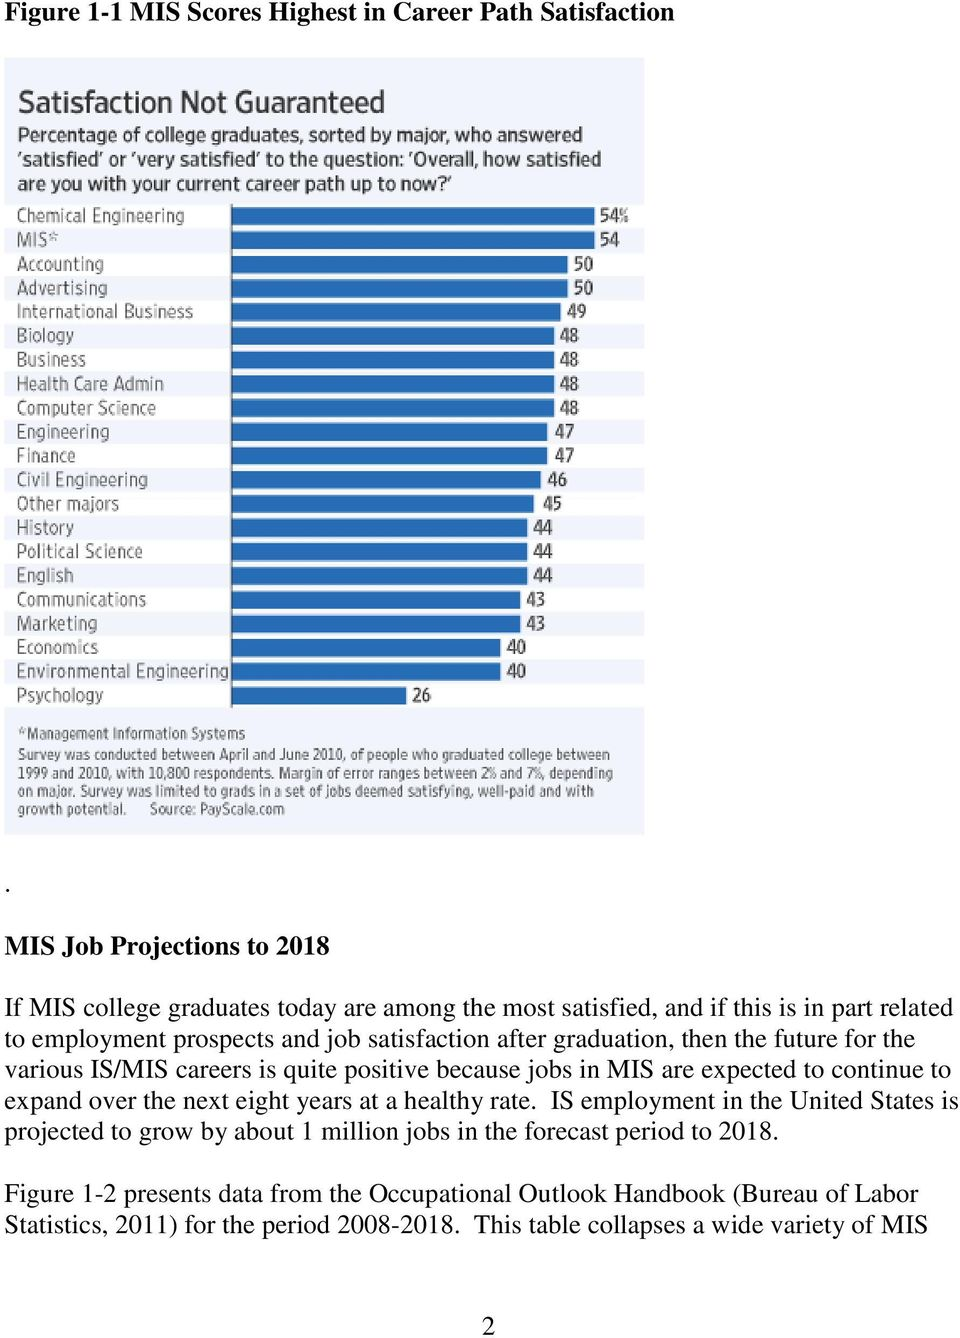 graduation, then the future for the various IS/MIS careers is quite positive because jobs in MIS are expected to continue to expand over the next eight years at a healthy